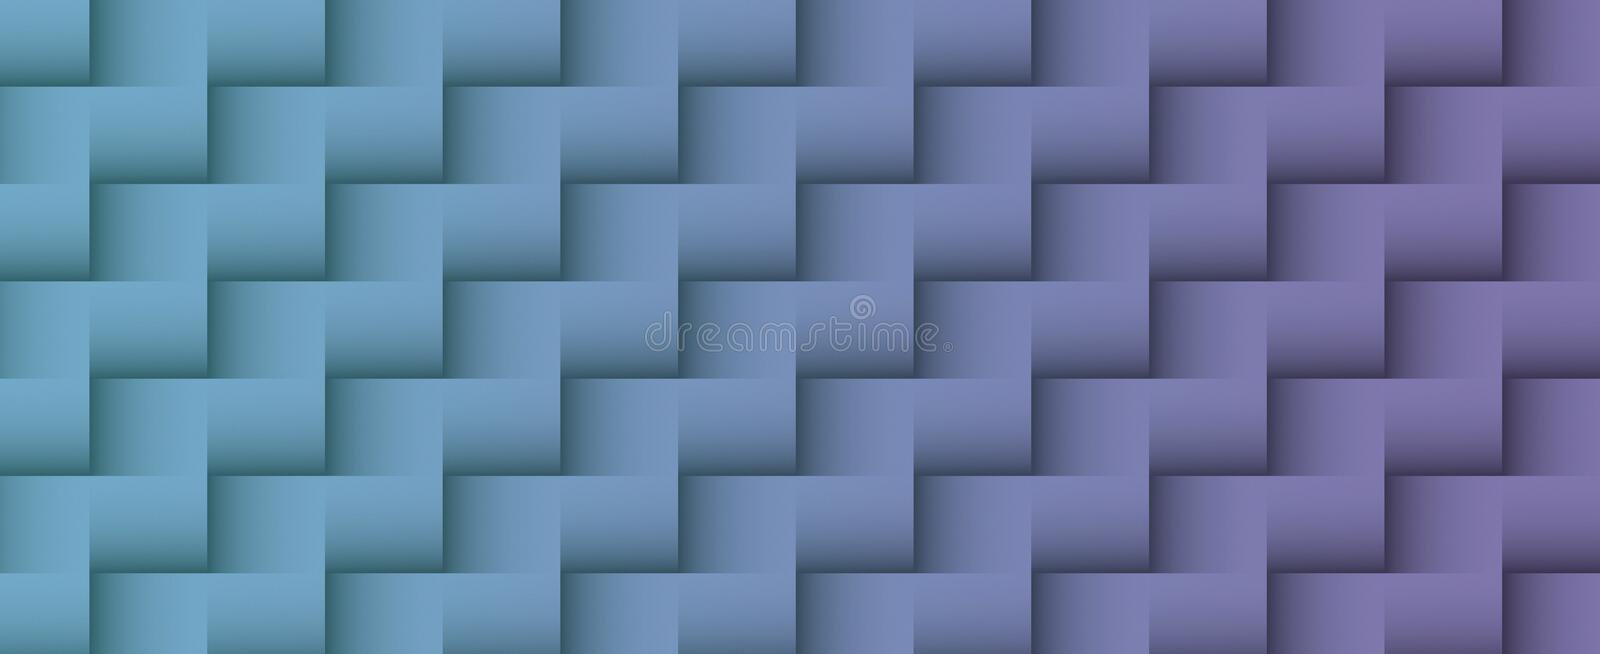 Muted grayish blue and violet purple geometric squares pattern abstract business background illustration vector illustration